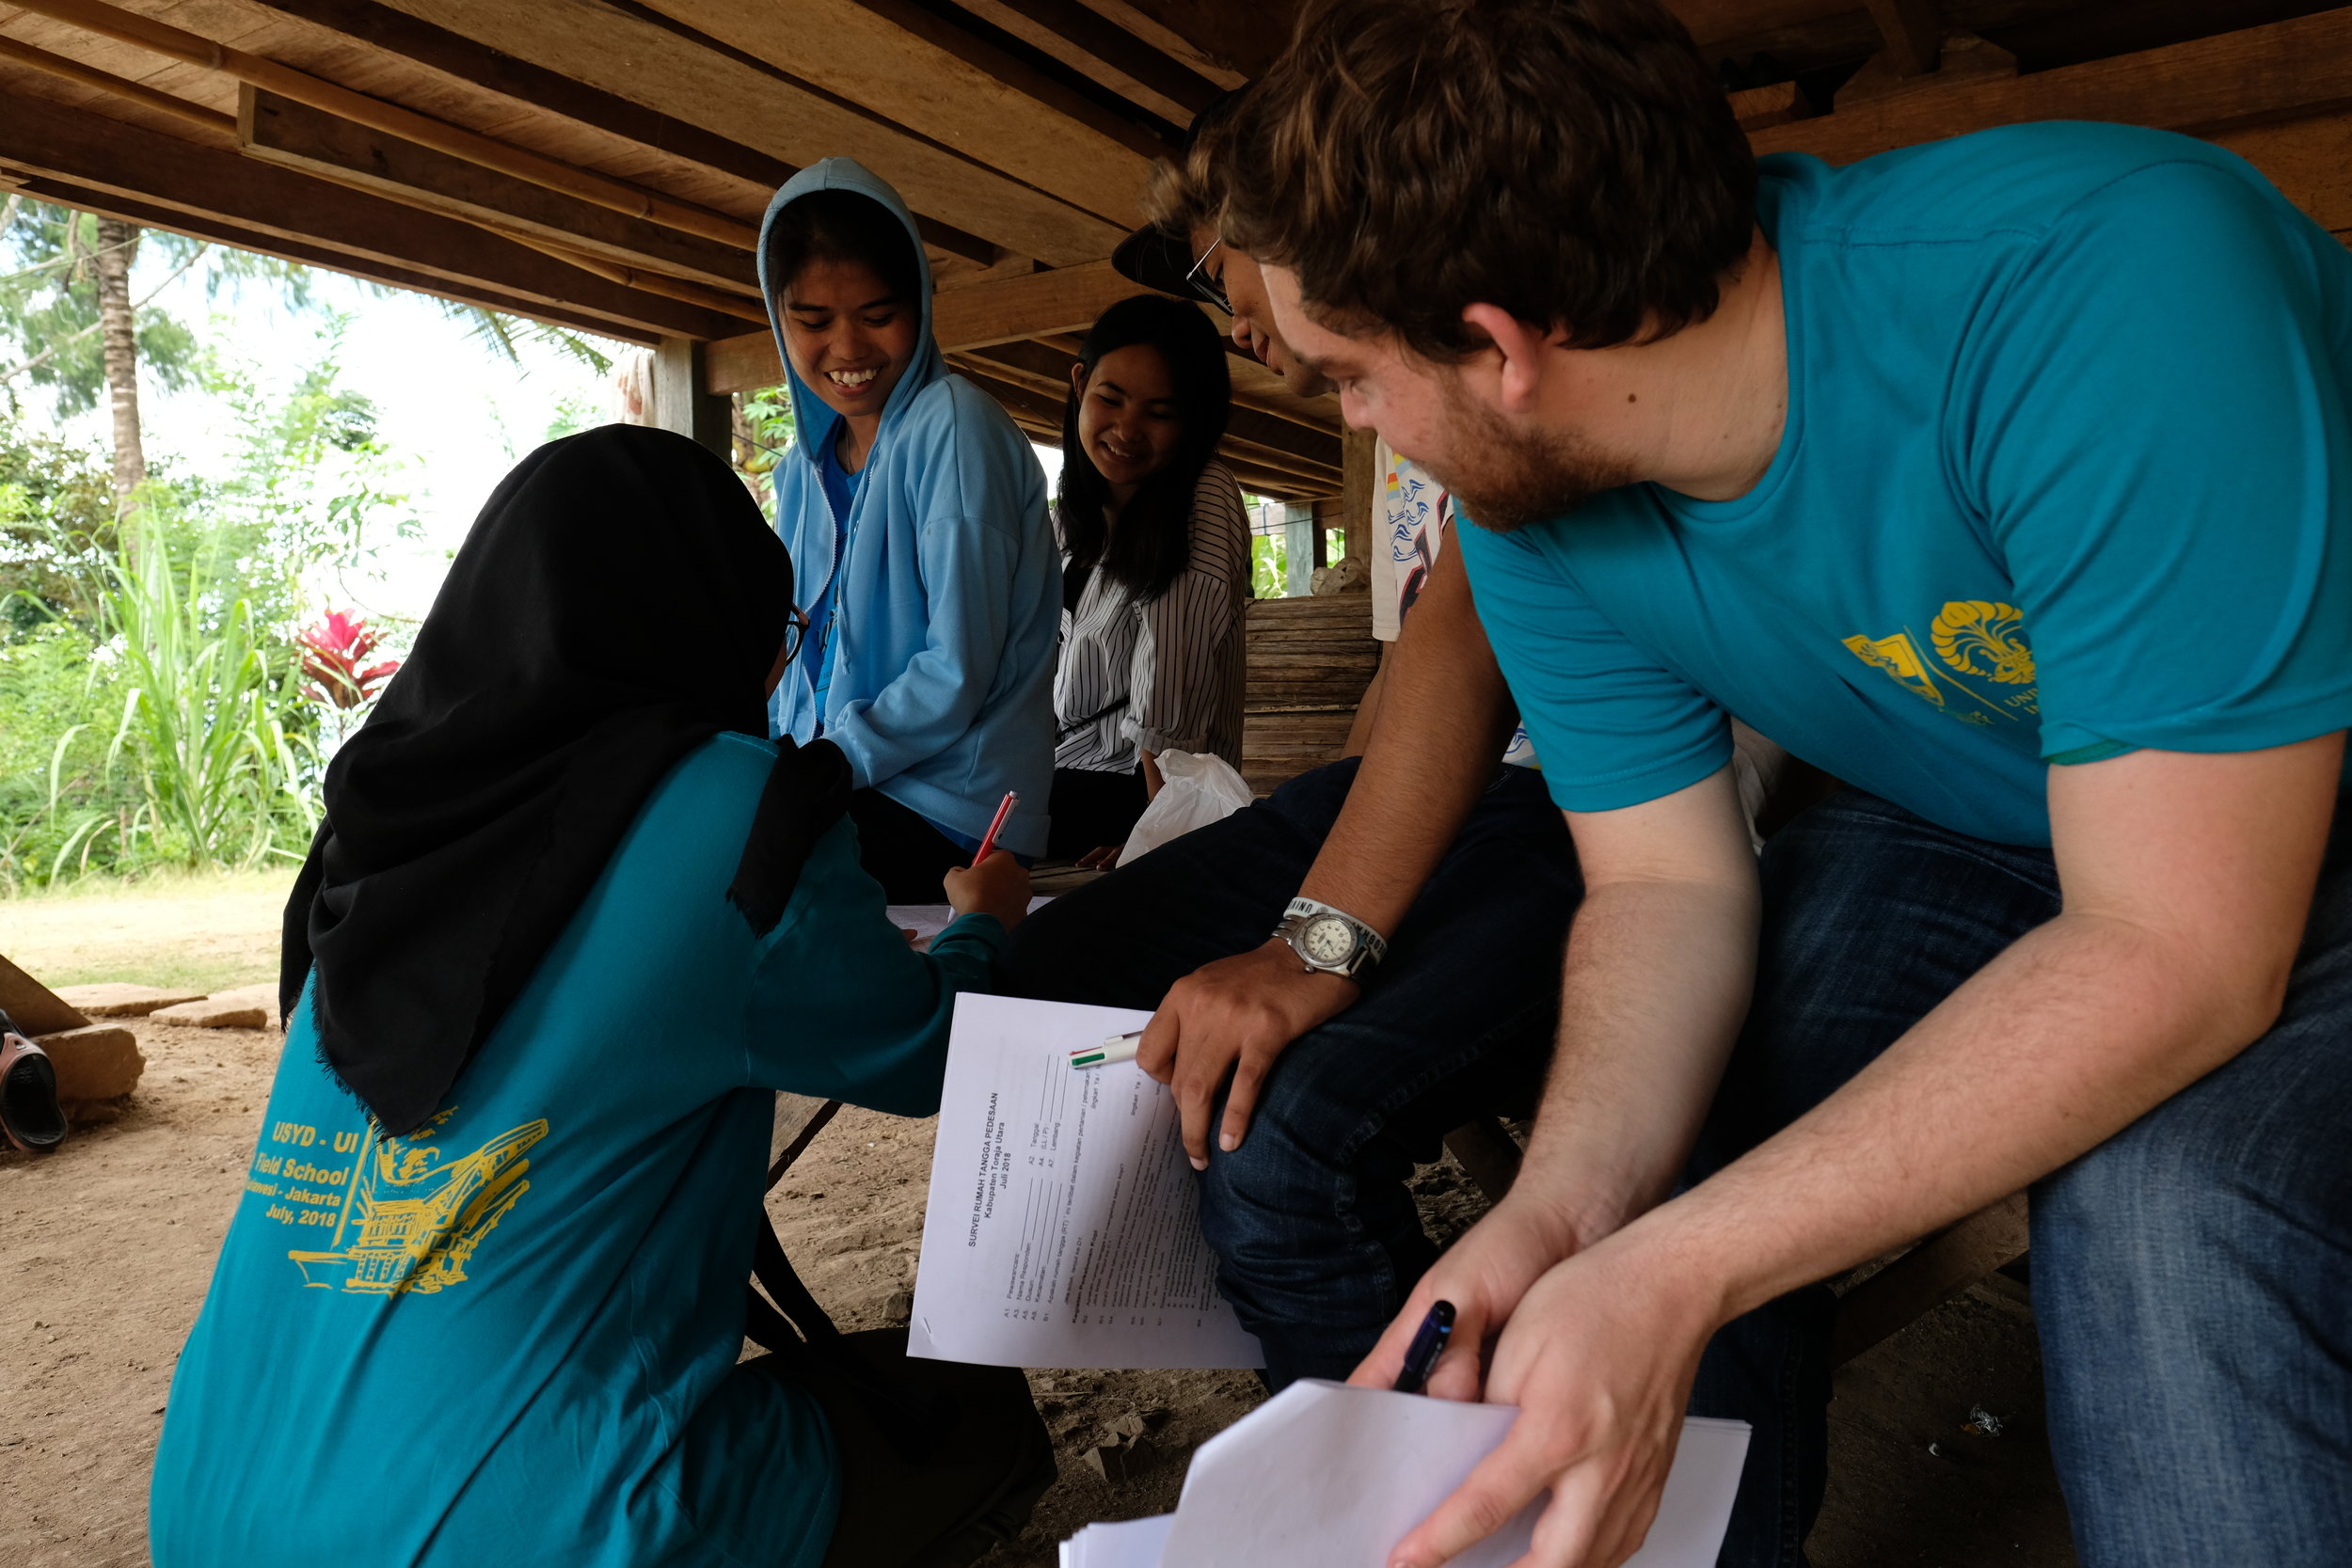 We conducted surveys in the field for 2 days, and our hosts (who were studying to become english teachers) conducted many of our interviews in Torajan, which were then translated to Bahasa Indonesian to our Universitas Indonesian students, and then to English.